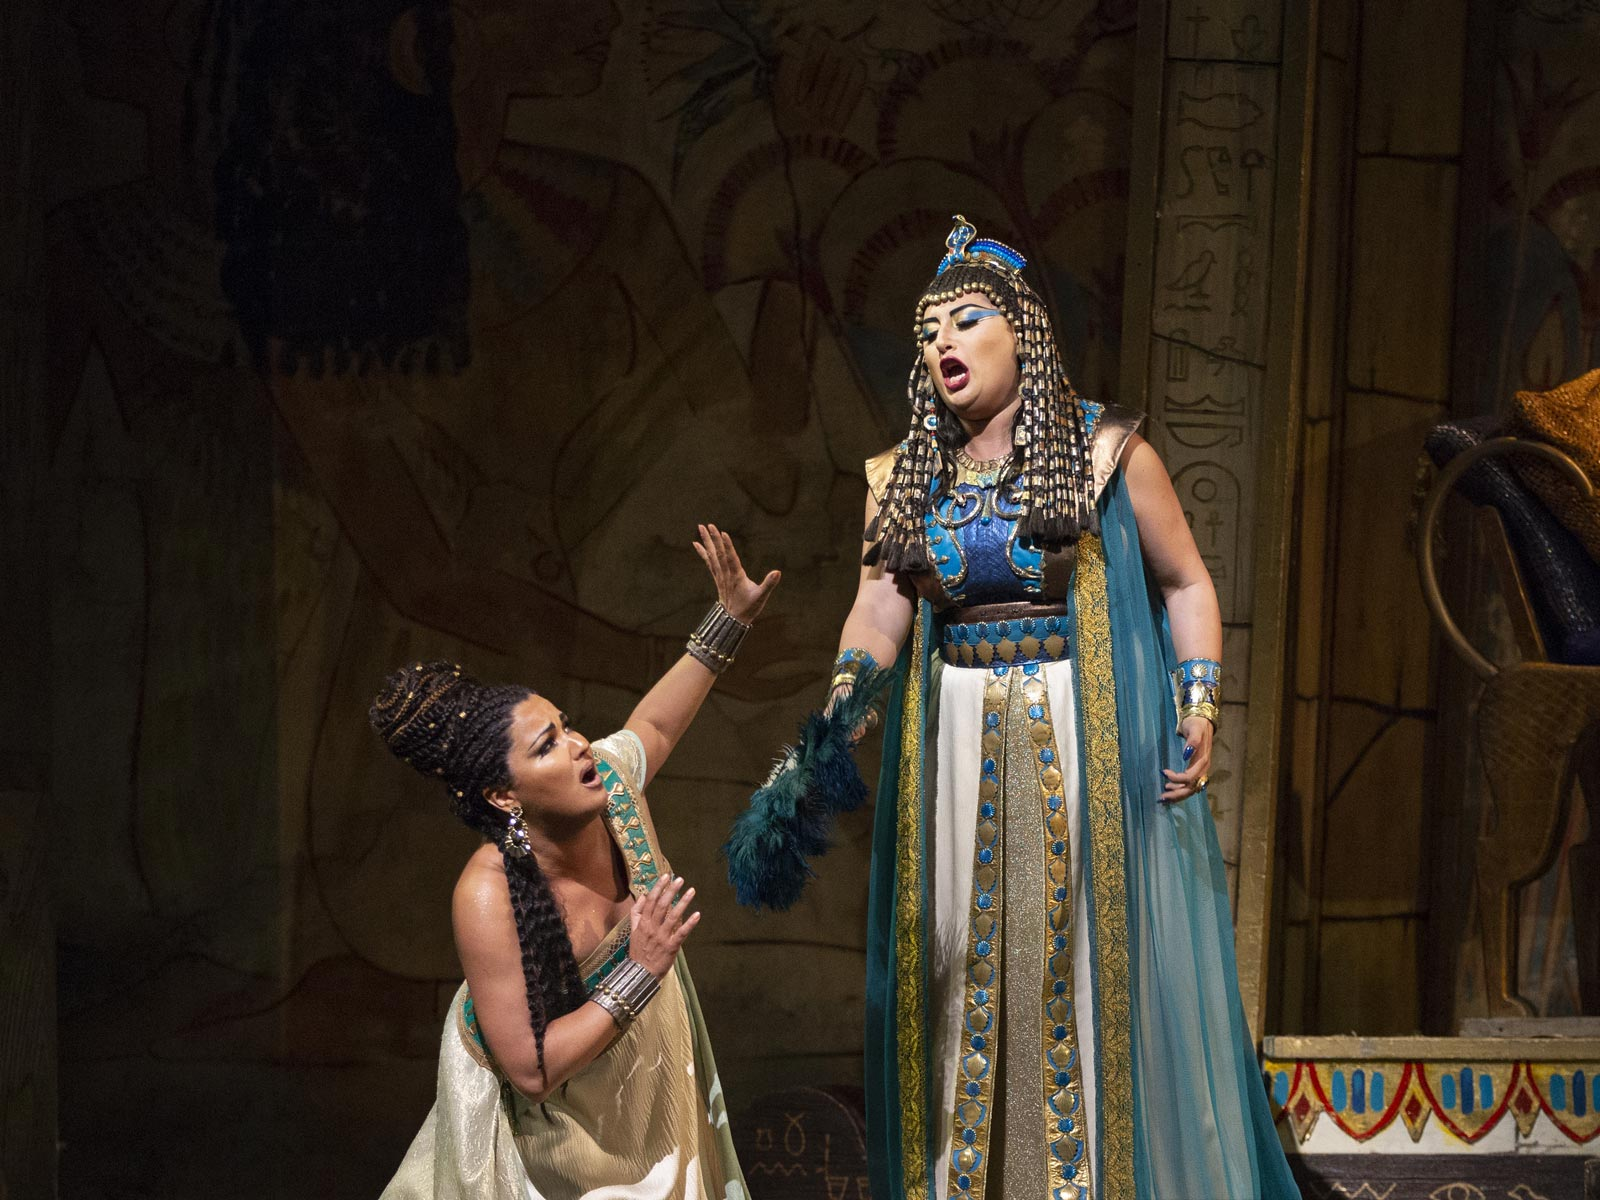 Anna Netrebko and Anita Rachvelishvili in Aida